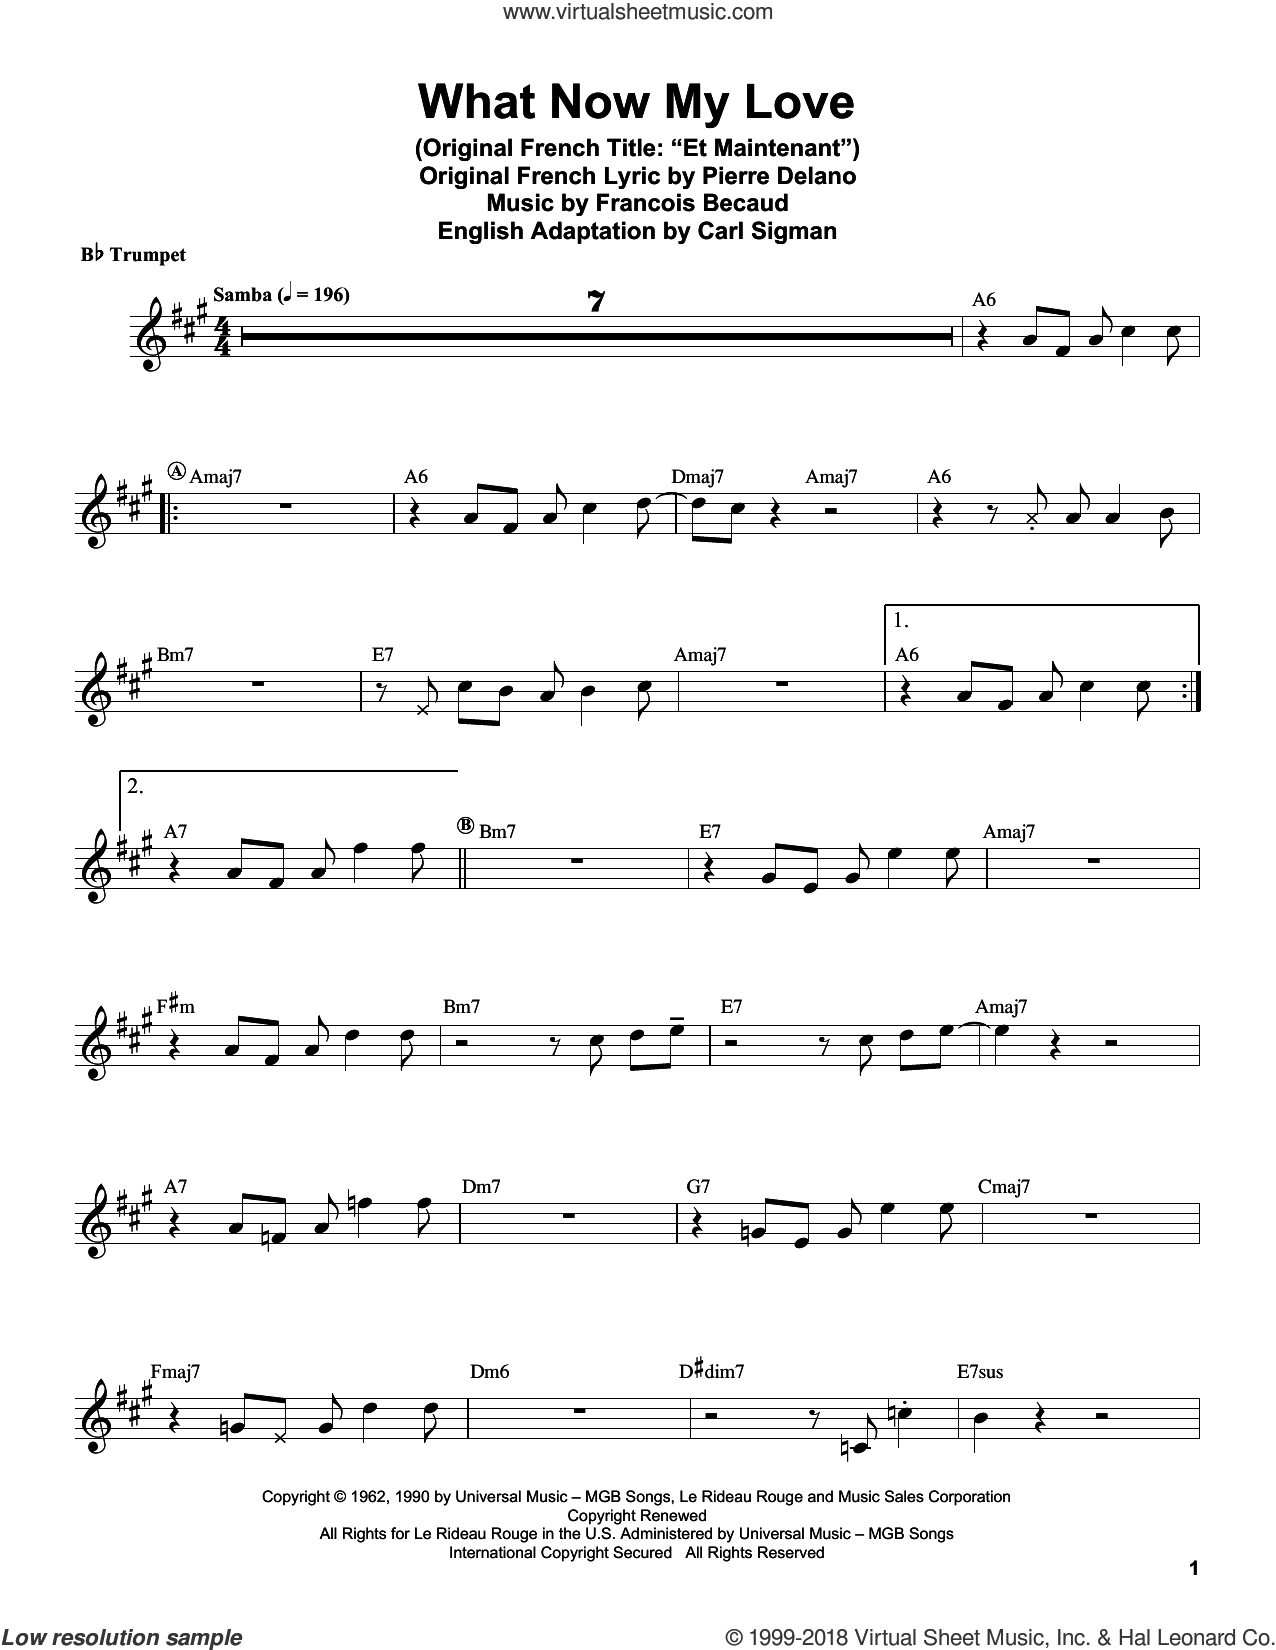 What Now My Love sheet music for trumpet solo (transcription) by Herb Alpert, Carl Sigman, Francois Becaud and Pierre Delanoe, intermediate trumpet (transcription)